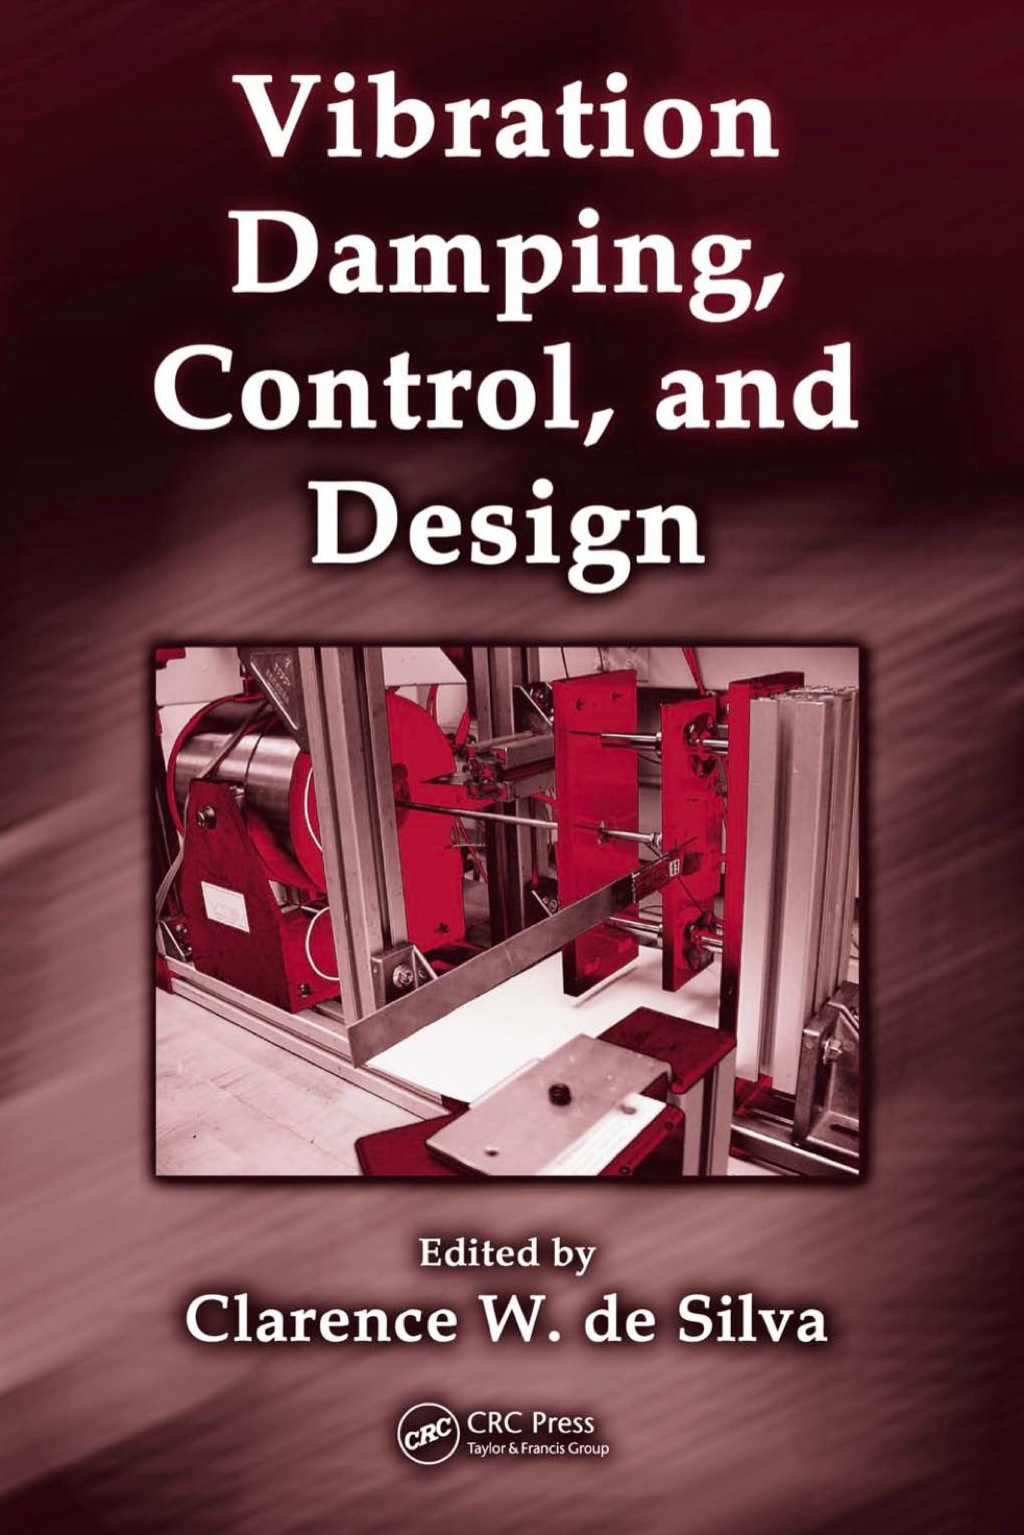 Vibration Damping, Control, and Design (ebook) eBooks